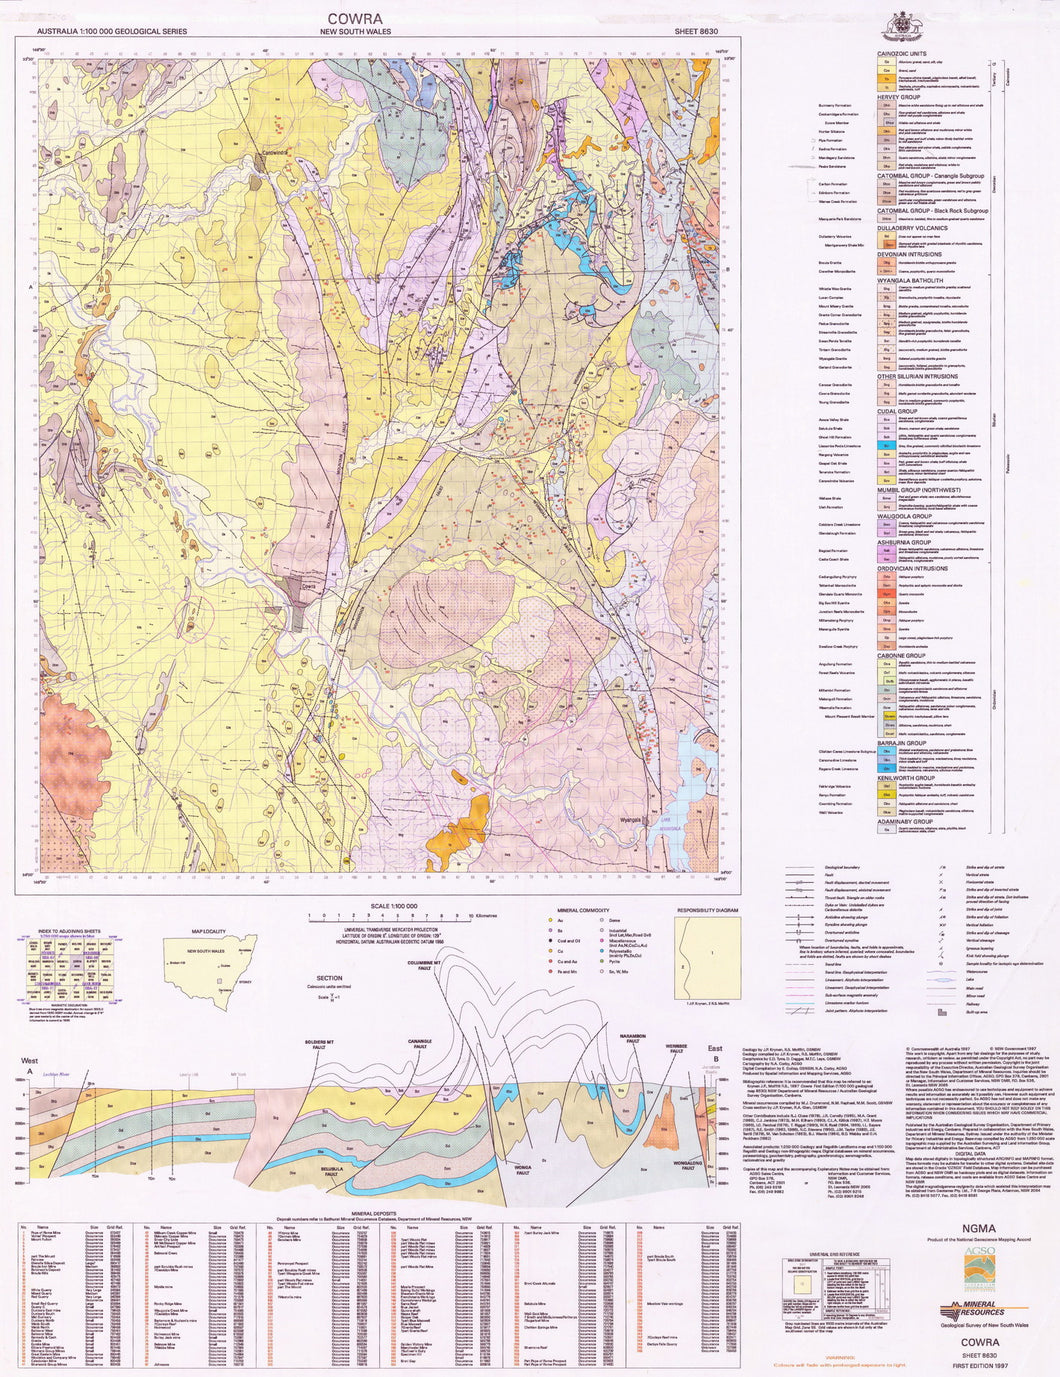 Image of Cowra 1:100000 Geological map